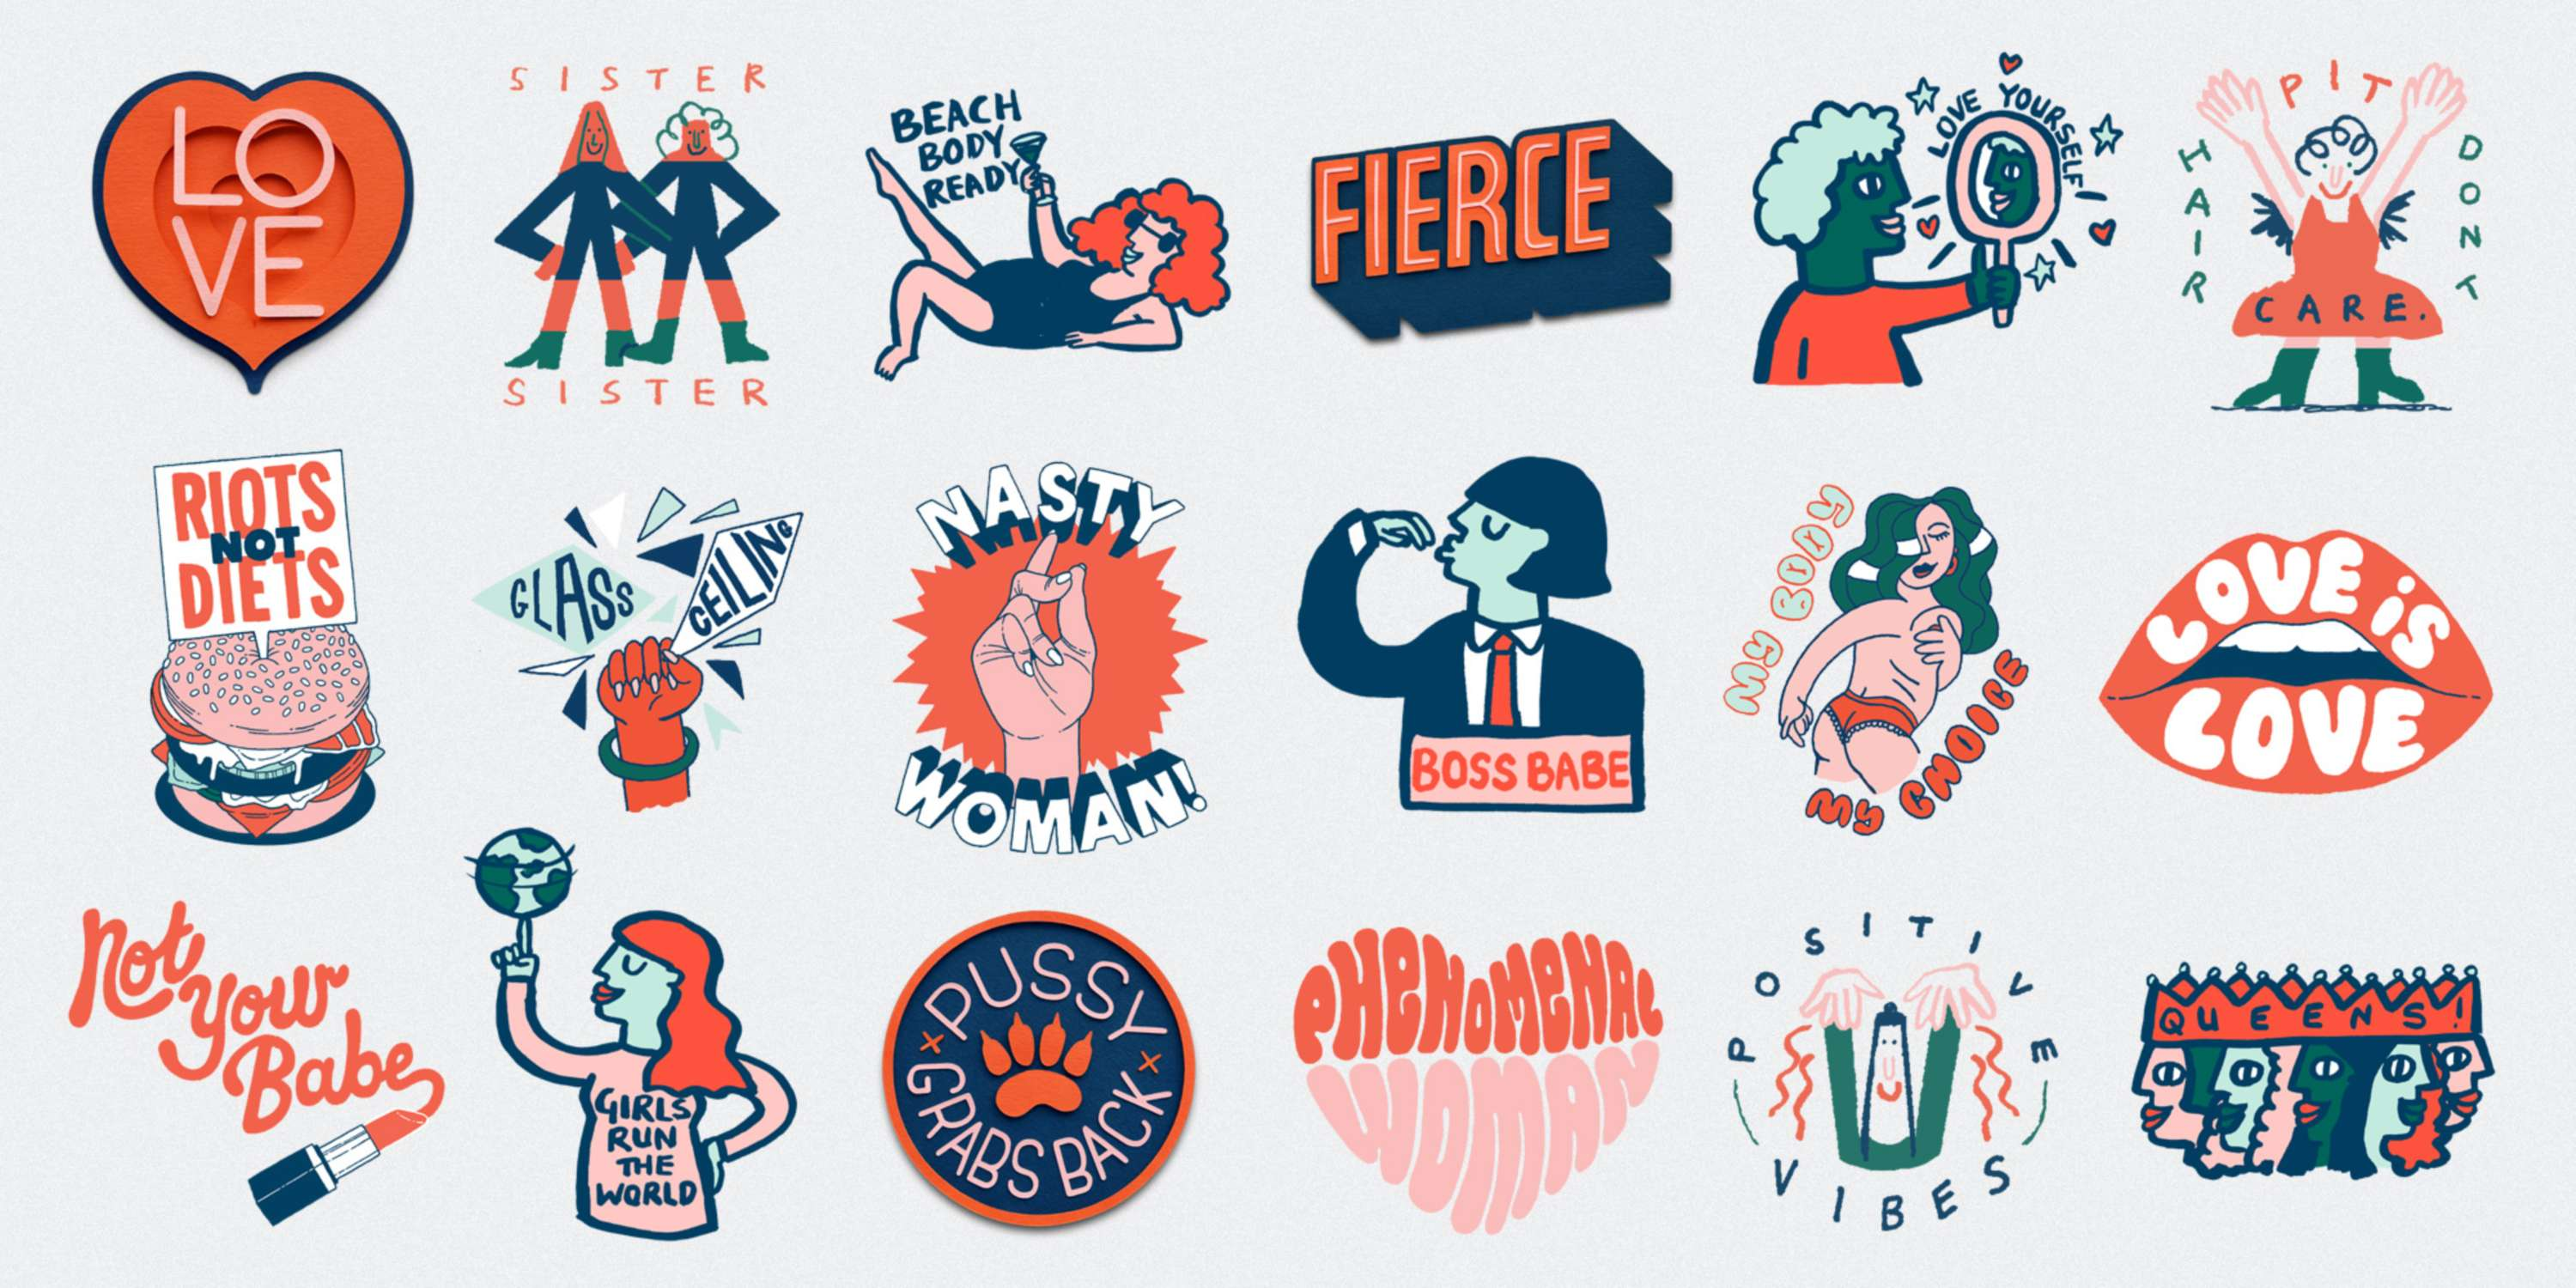 to the girls sticker pack the dots